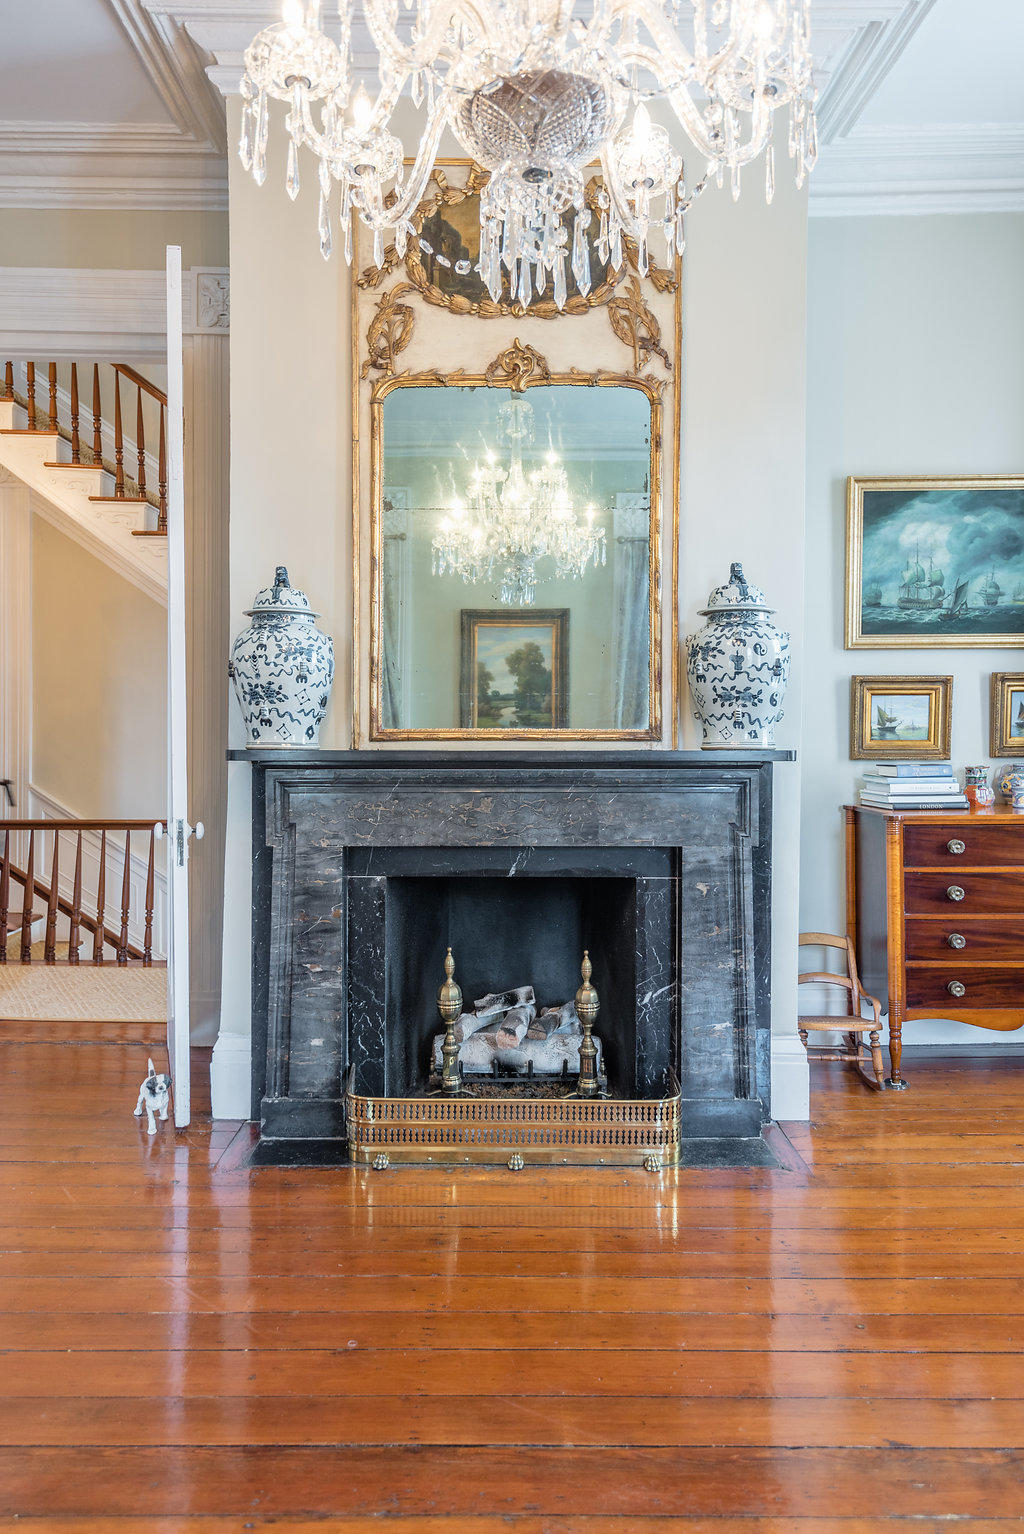 South of Broad Homes For Sale - 48&48 1/2 South Battery, Charleston, SC - 81